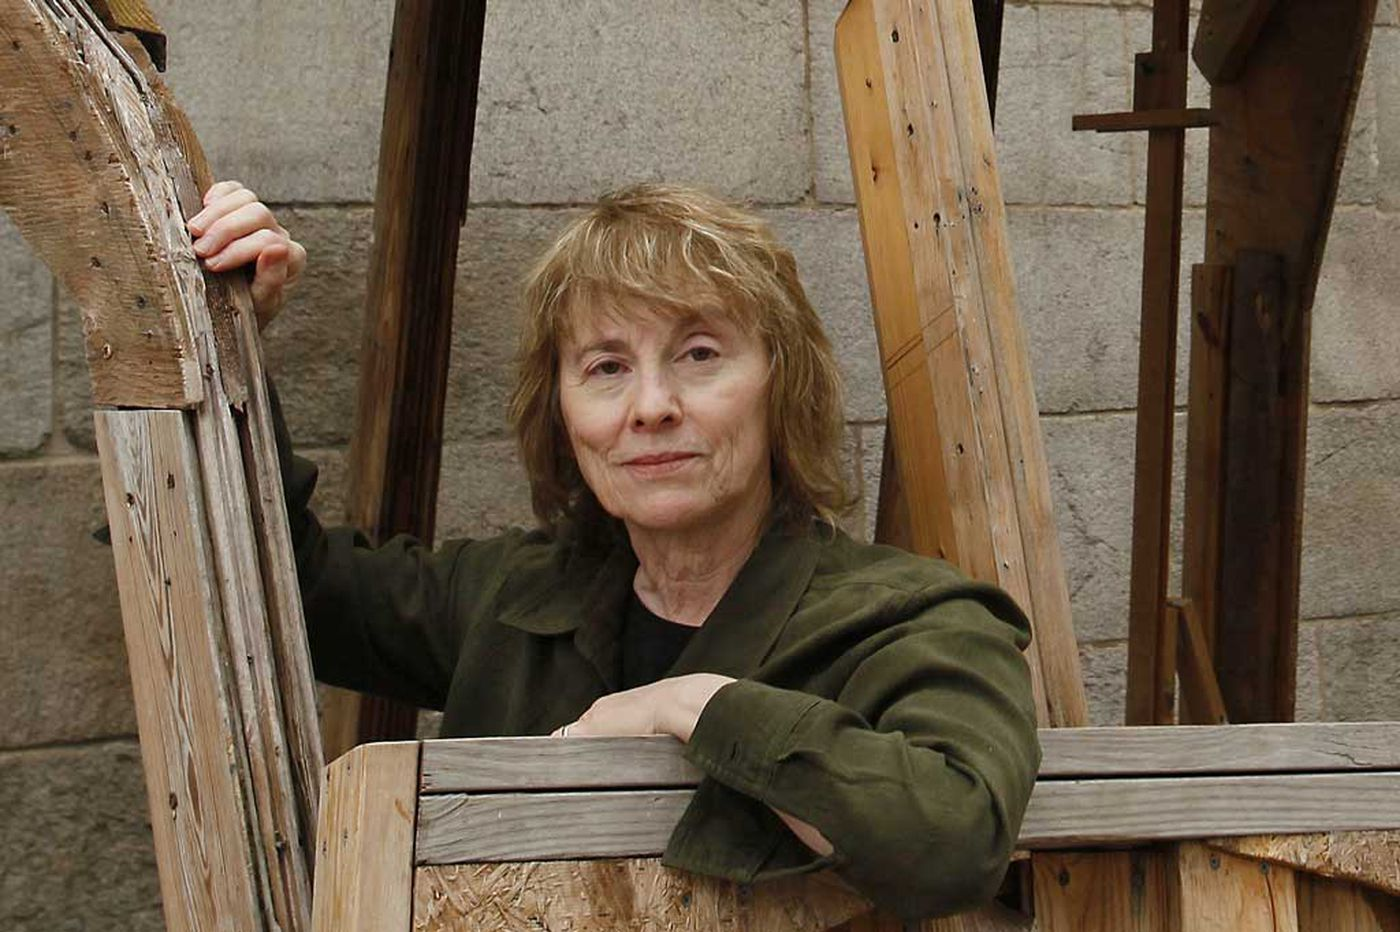 Kudos to UArts leaders for supporting Camille Paglia amid demands from campus radicals | Opinion